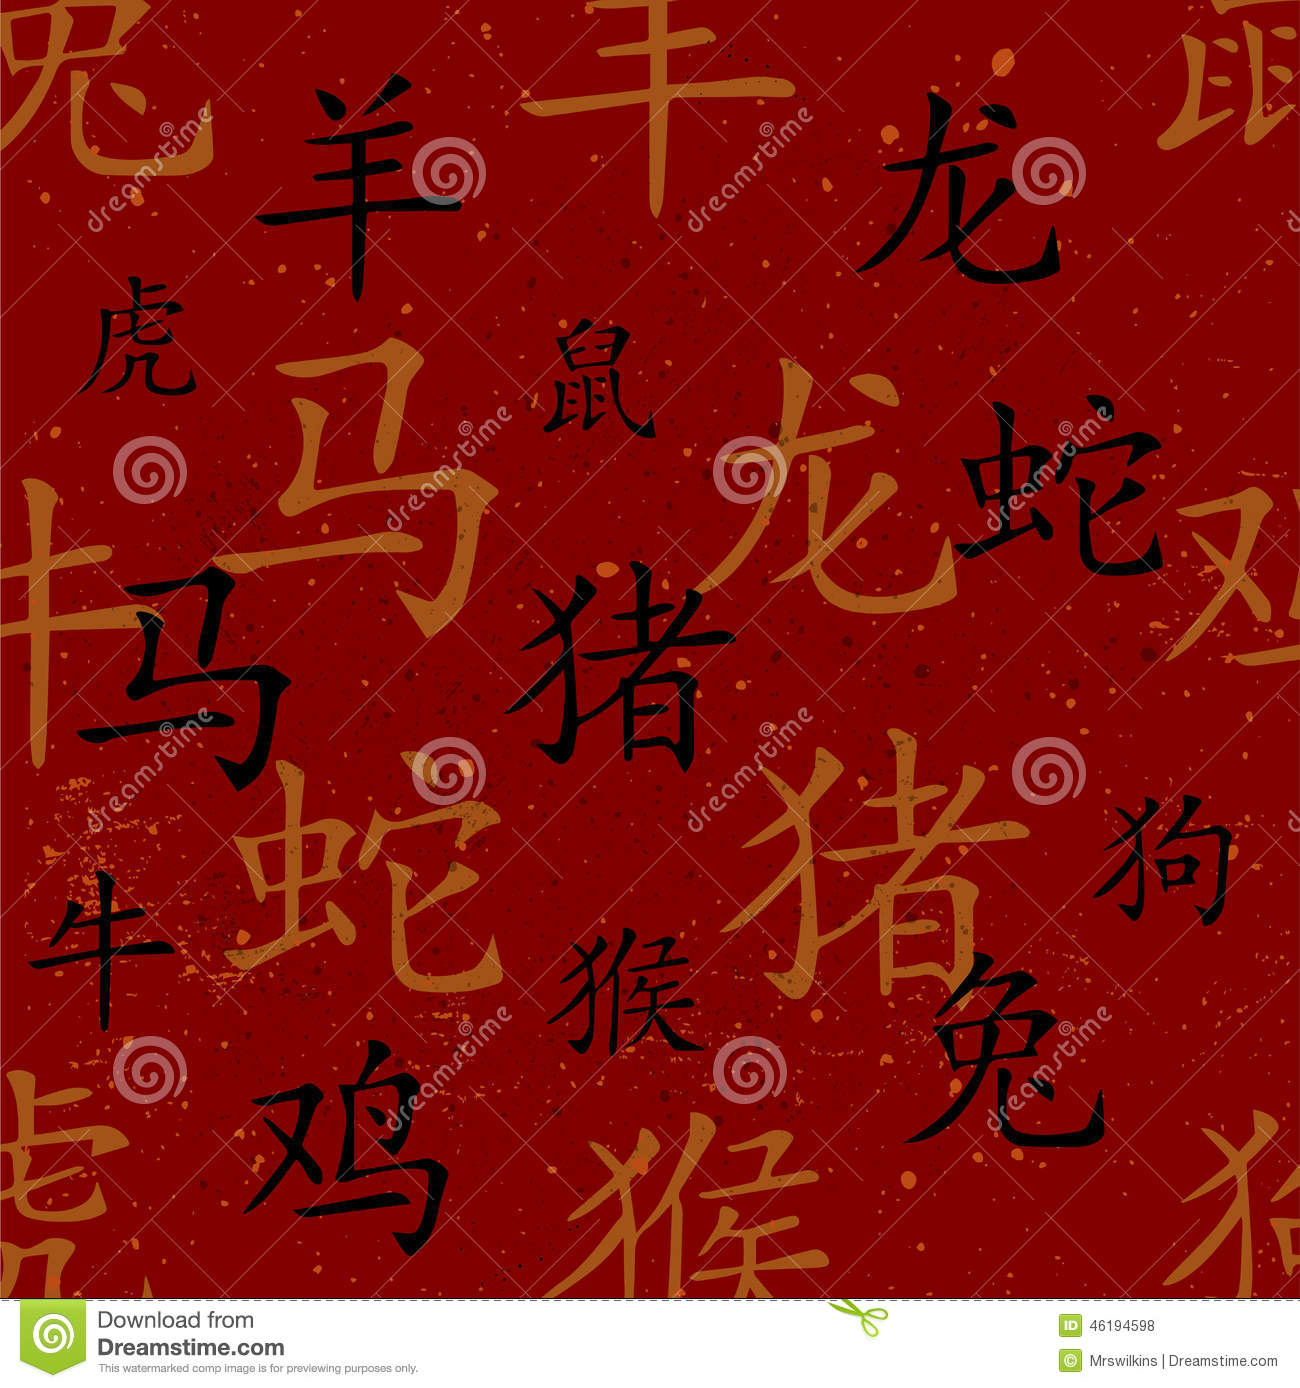 Chinese Calligraphy Wallpaper Hd Chinese Red Maroon Oriental Background With Zodiac Signs